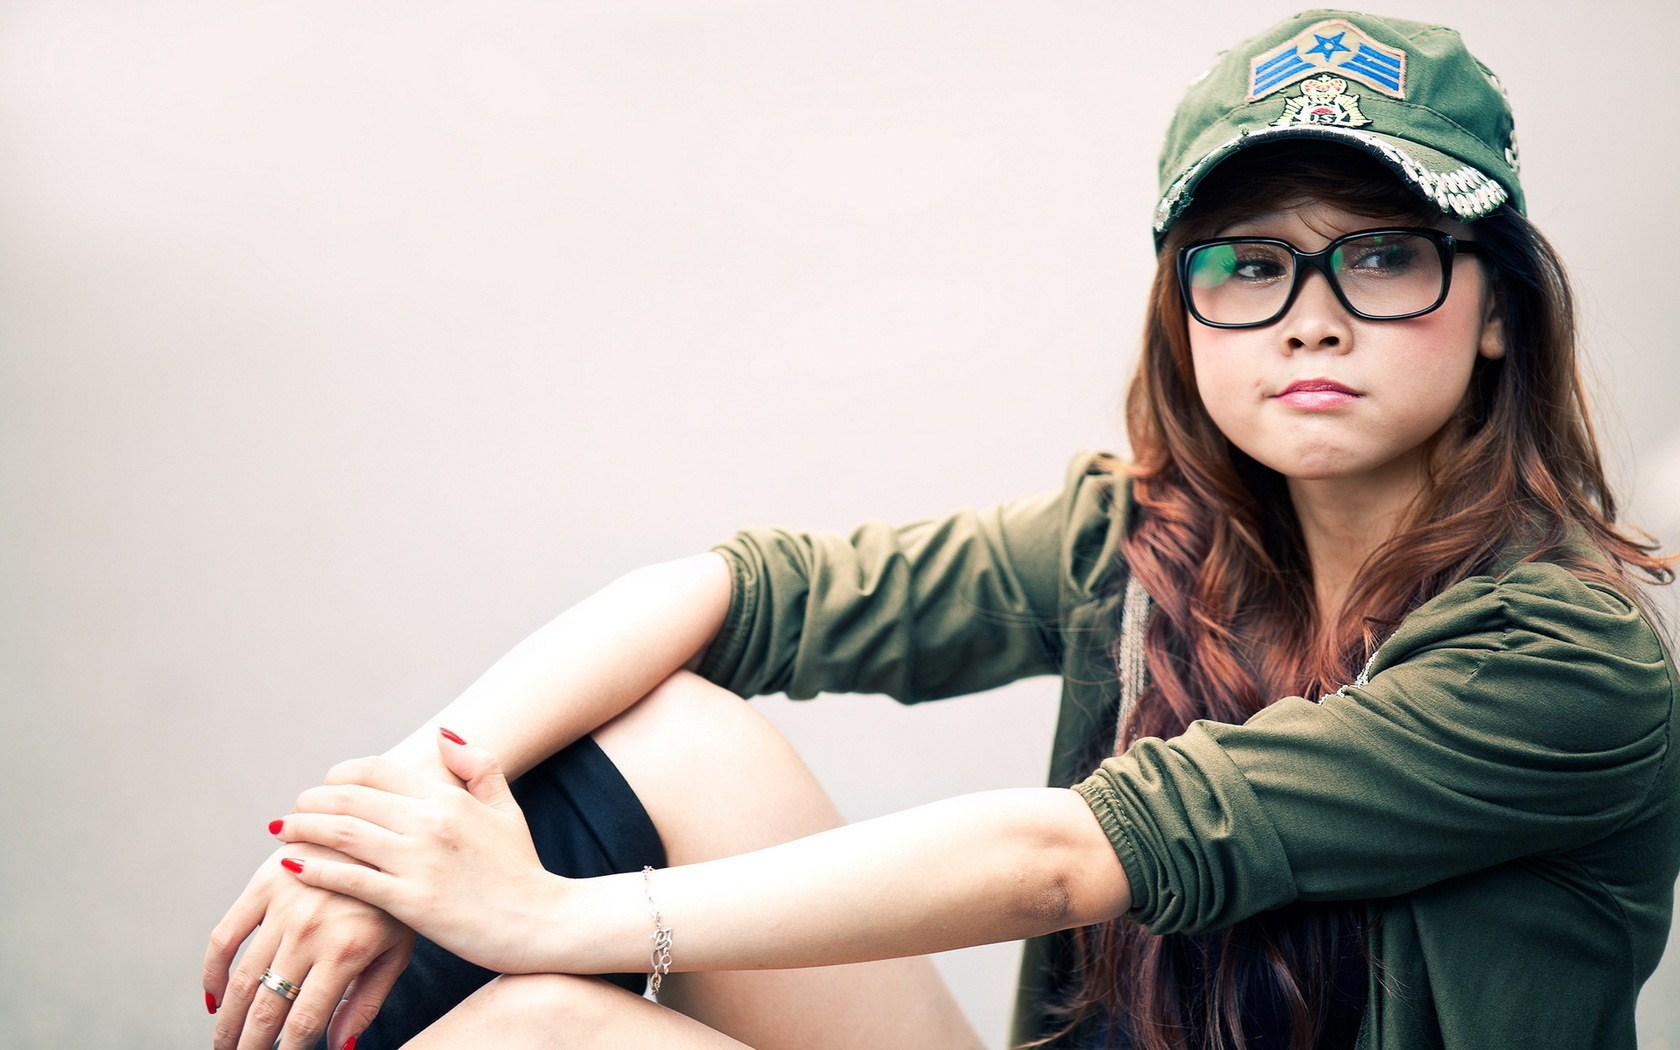 Girl In Glasses 8 HD Image Wallpaper